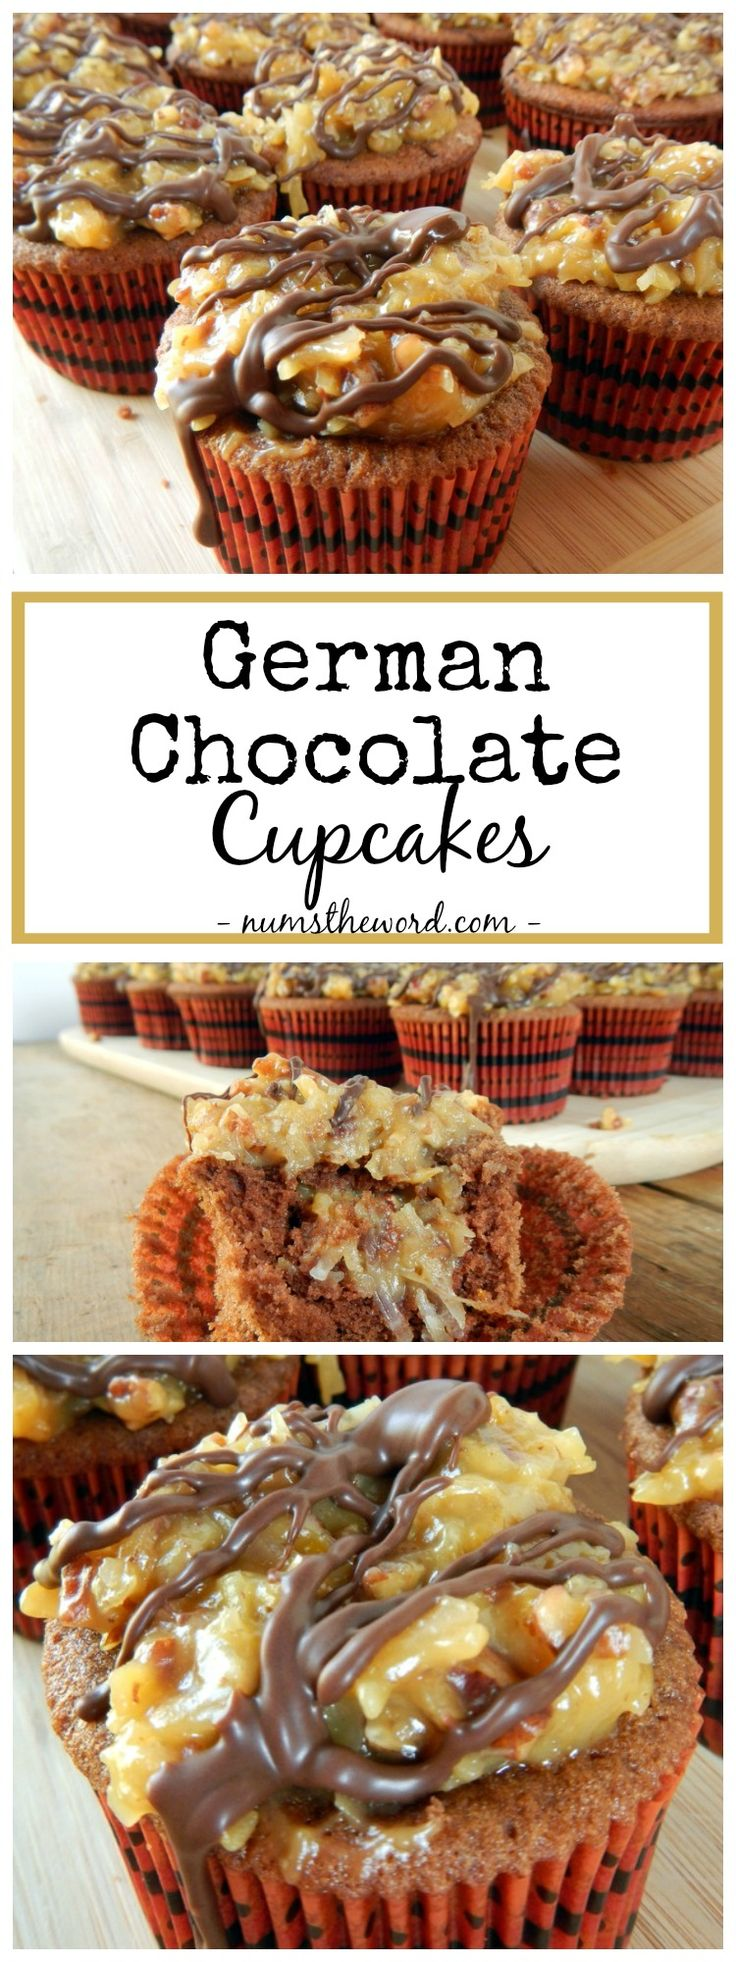 These German Chocolate Cupcakes are a favorite of ours. Easy to make and oh so yummy! Our favorite Chocolate cupcake topped with German Chocolate Frosting!                                                                                                                                                     More